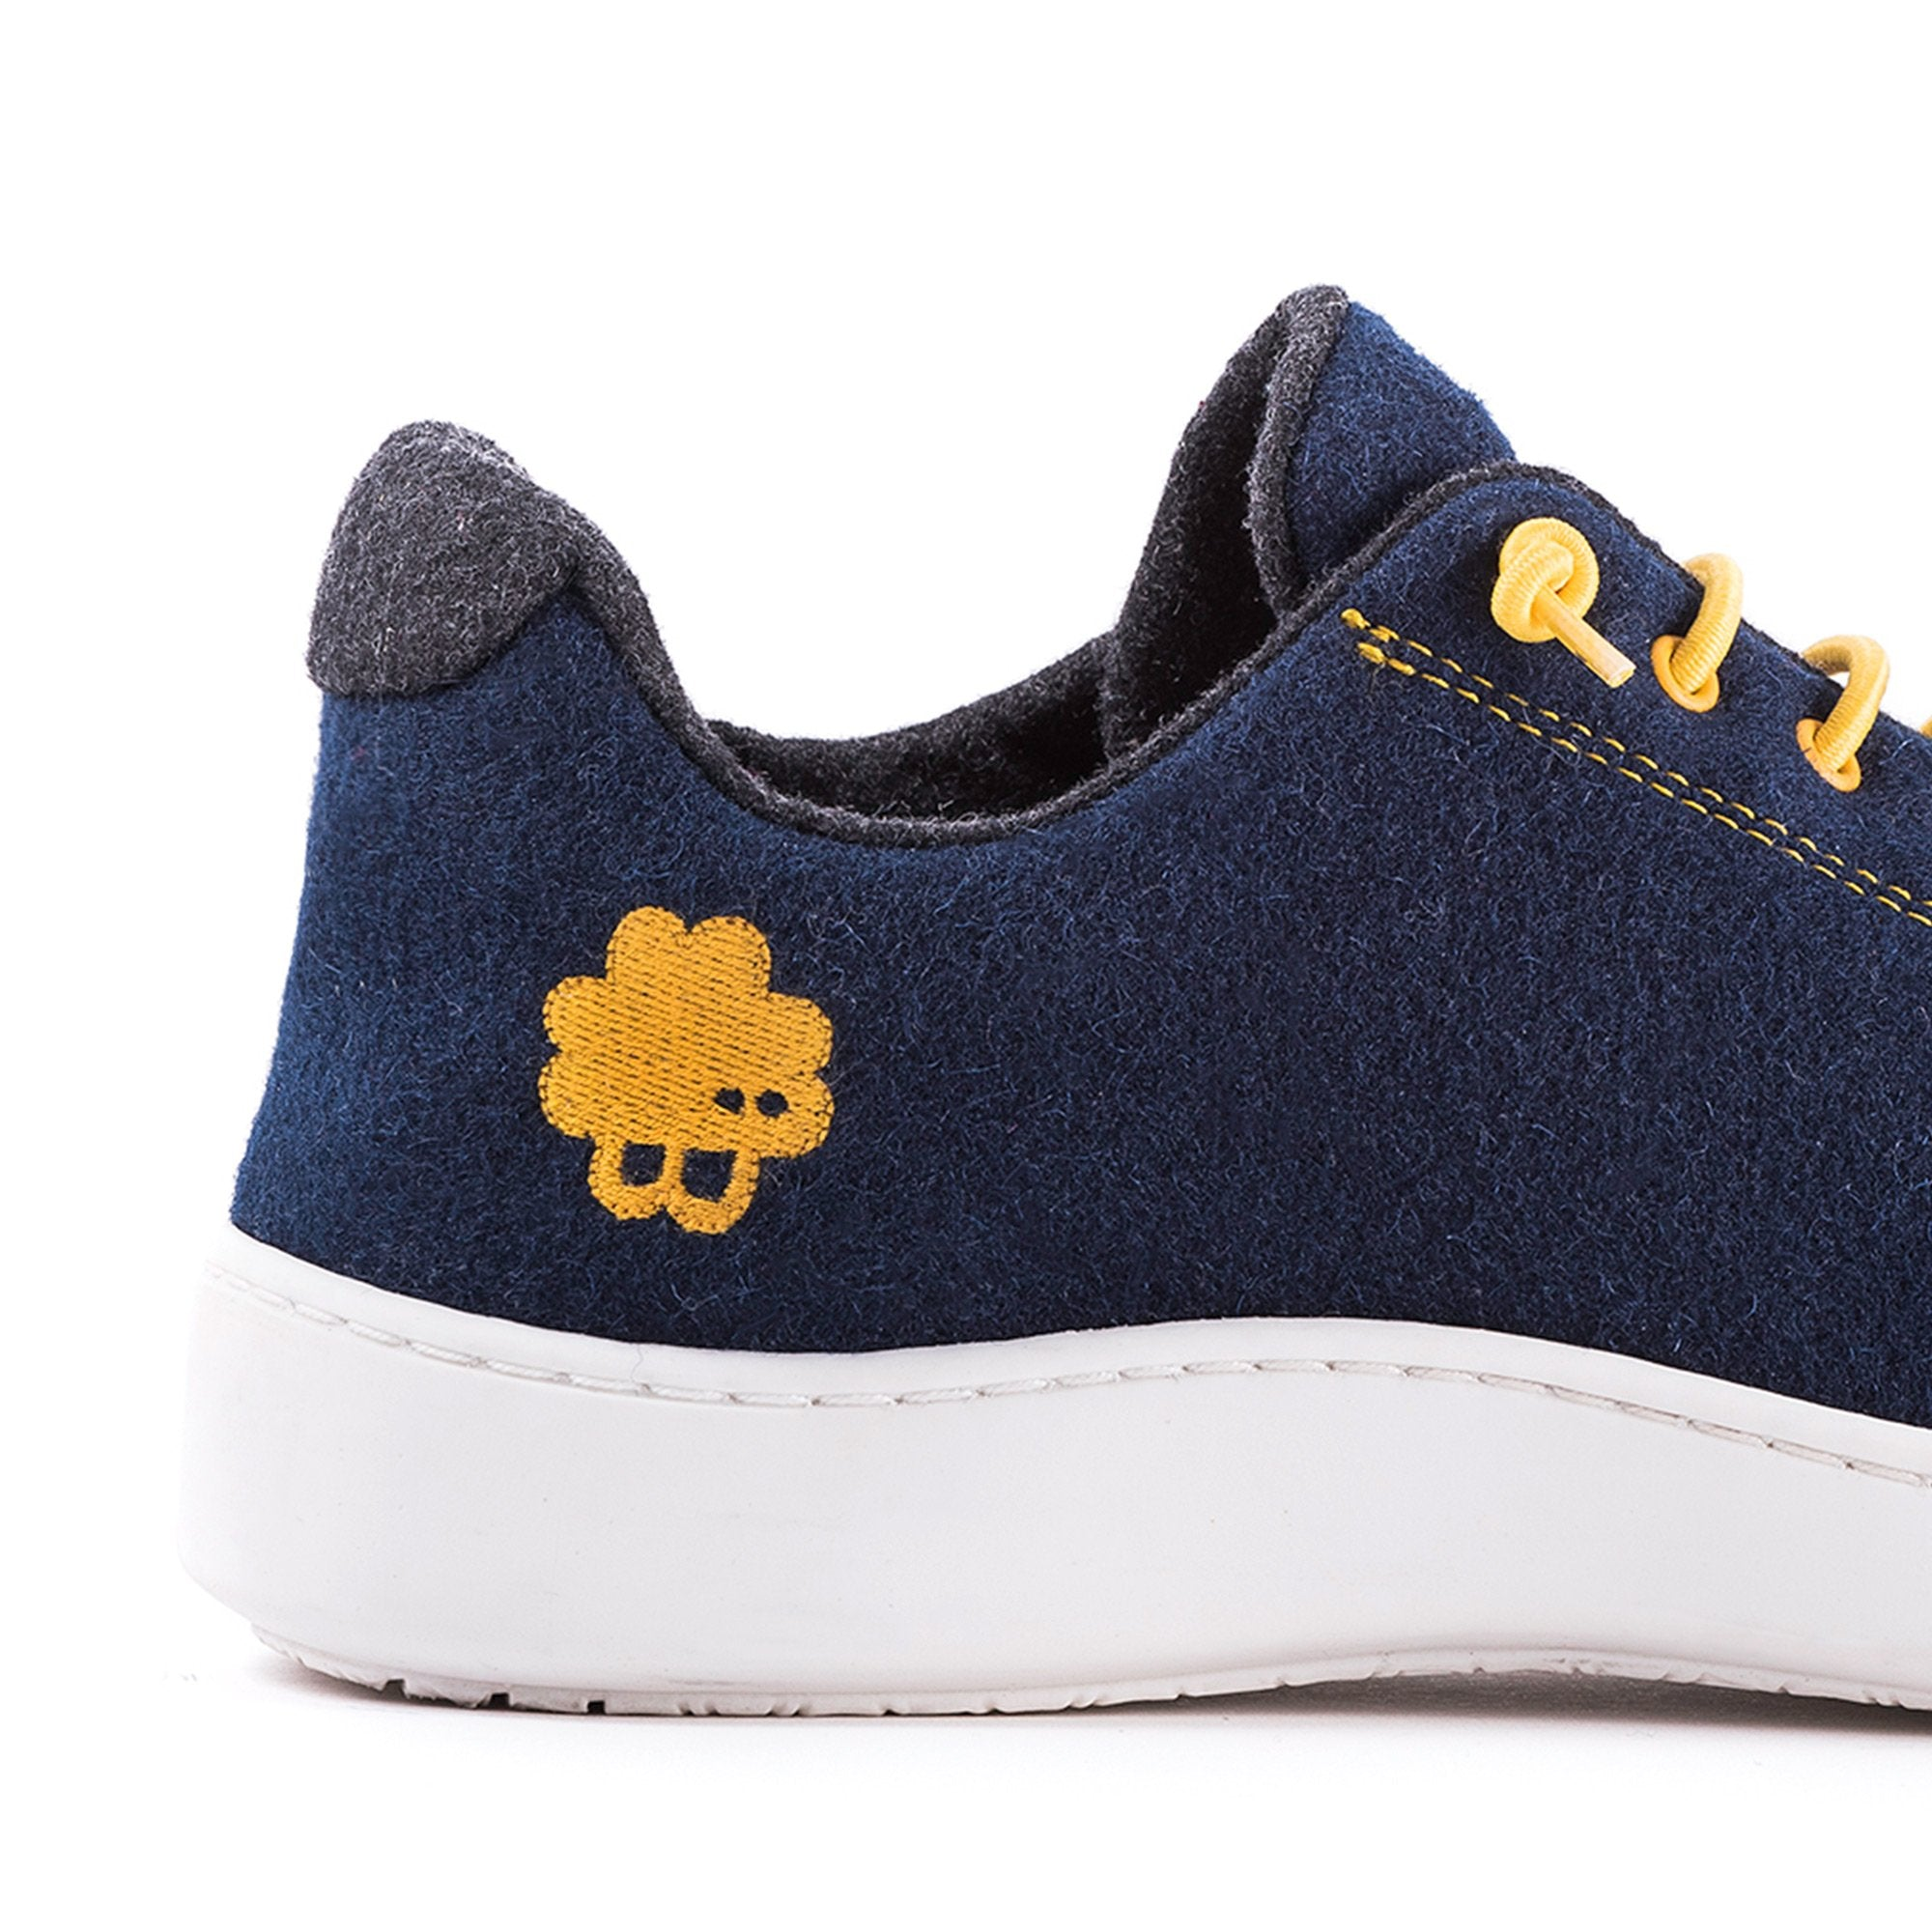 Urban Wooler Navy / Yellow